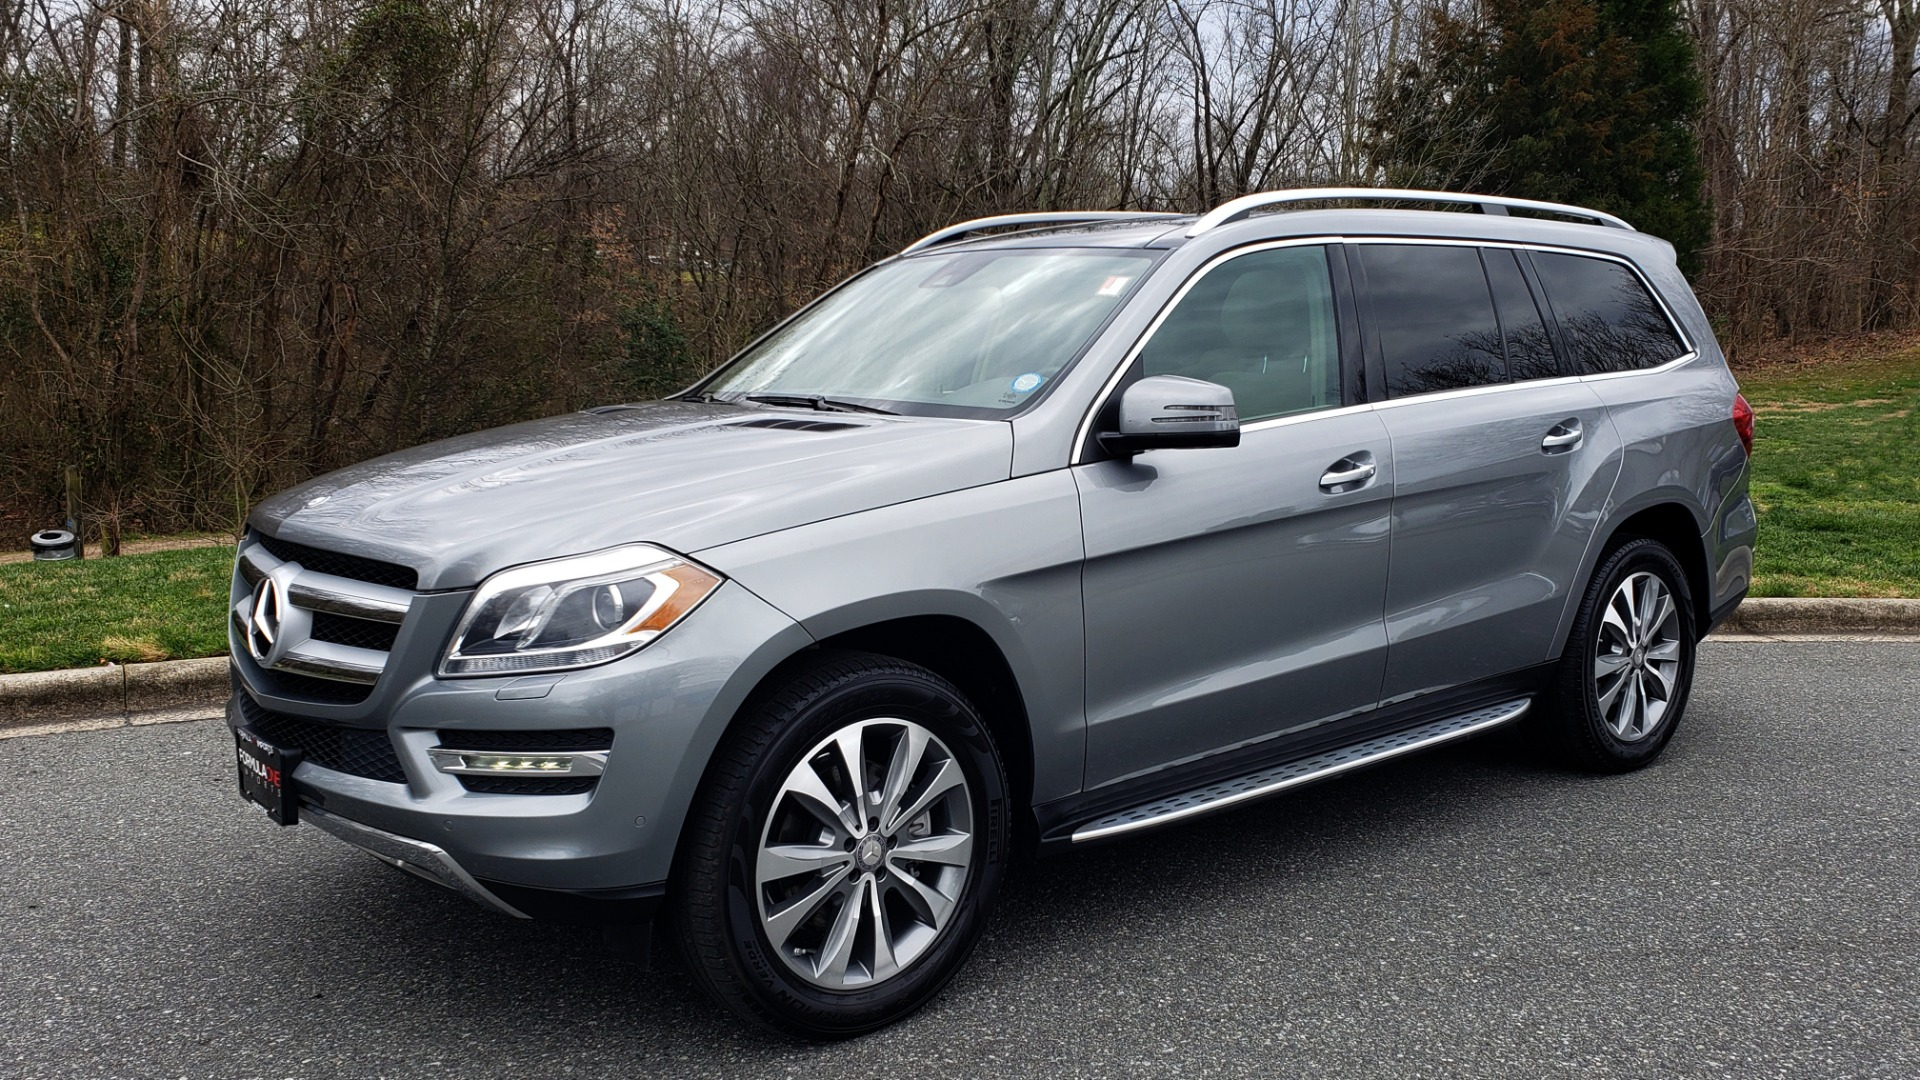 Used 2014 Mercedes-Benz GL-Class GL 450 4MATIC PREMIUM / NAV / PANO-ROOF / HK SND / 3-ROW for sale Sold at Formula Imports in Charlotte NC 28227 1